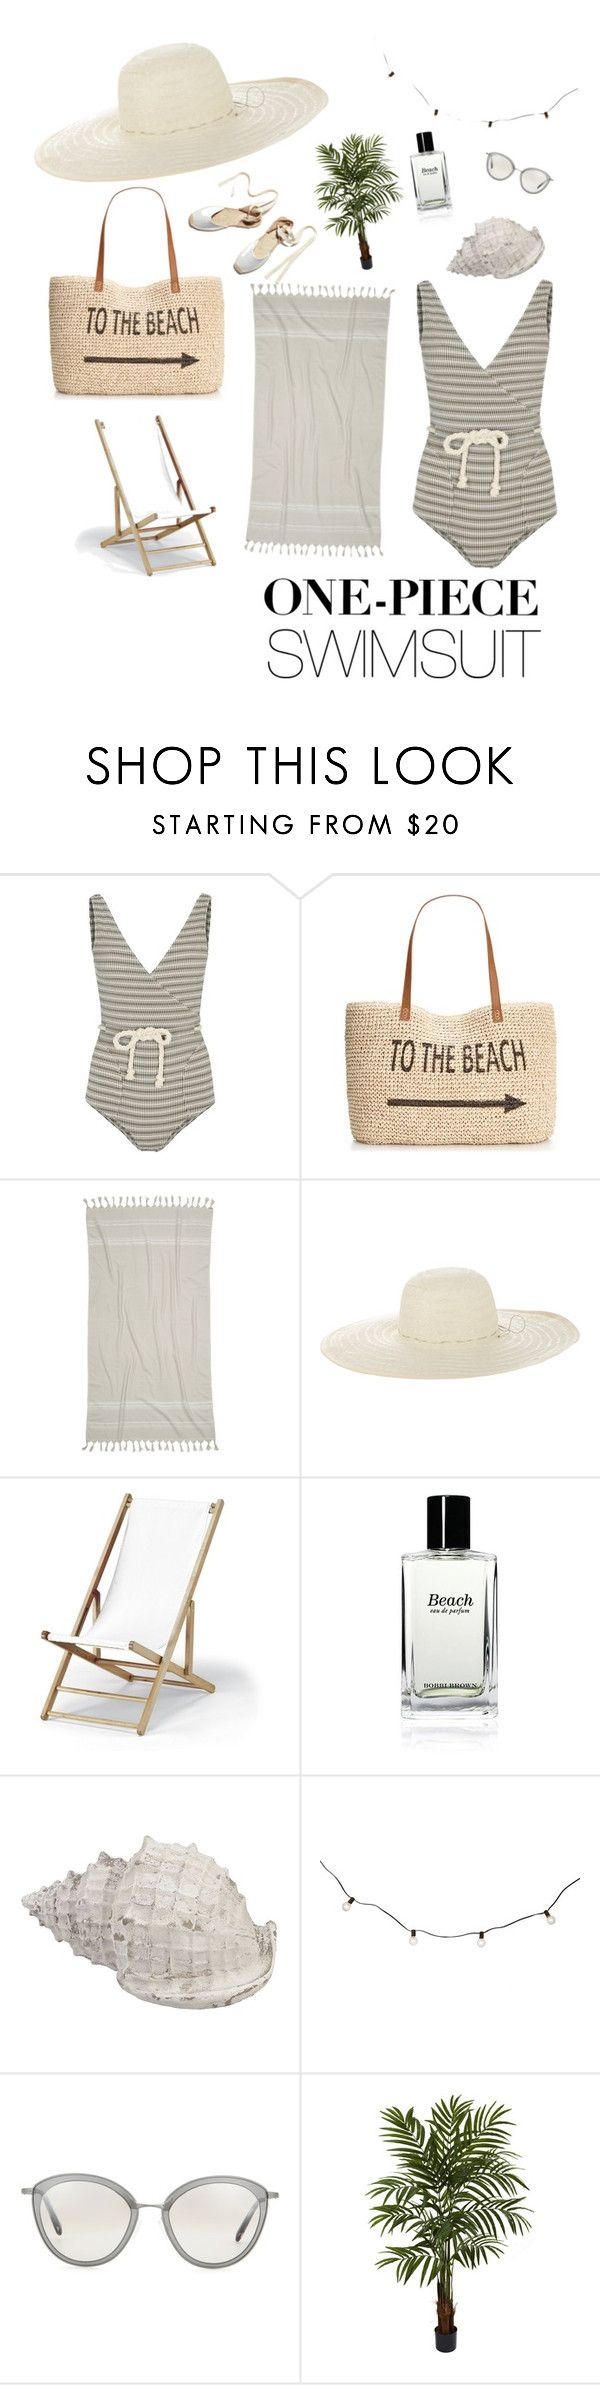 """""""One piece swimsuit --> omw beach"""" by thalyak ❤ liked on Polyvore featuring Lisa Marie Fernandez, Style & Co., IGH, Jennifer Ouellette, Telescope Casual, Bobbi Brown Cosmetics, Soludos, Oliver Peoples, Nearly Natural and onepieceswimsuit"""